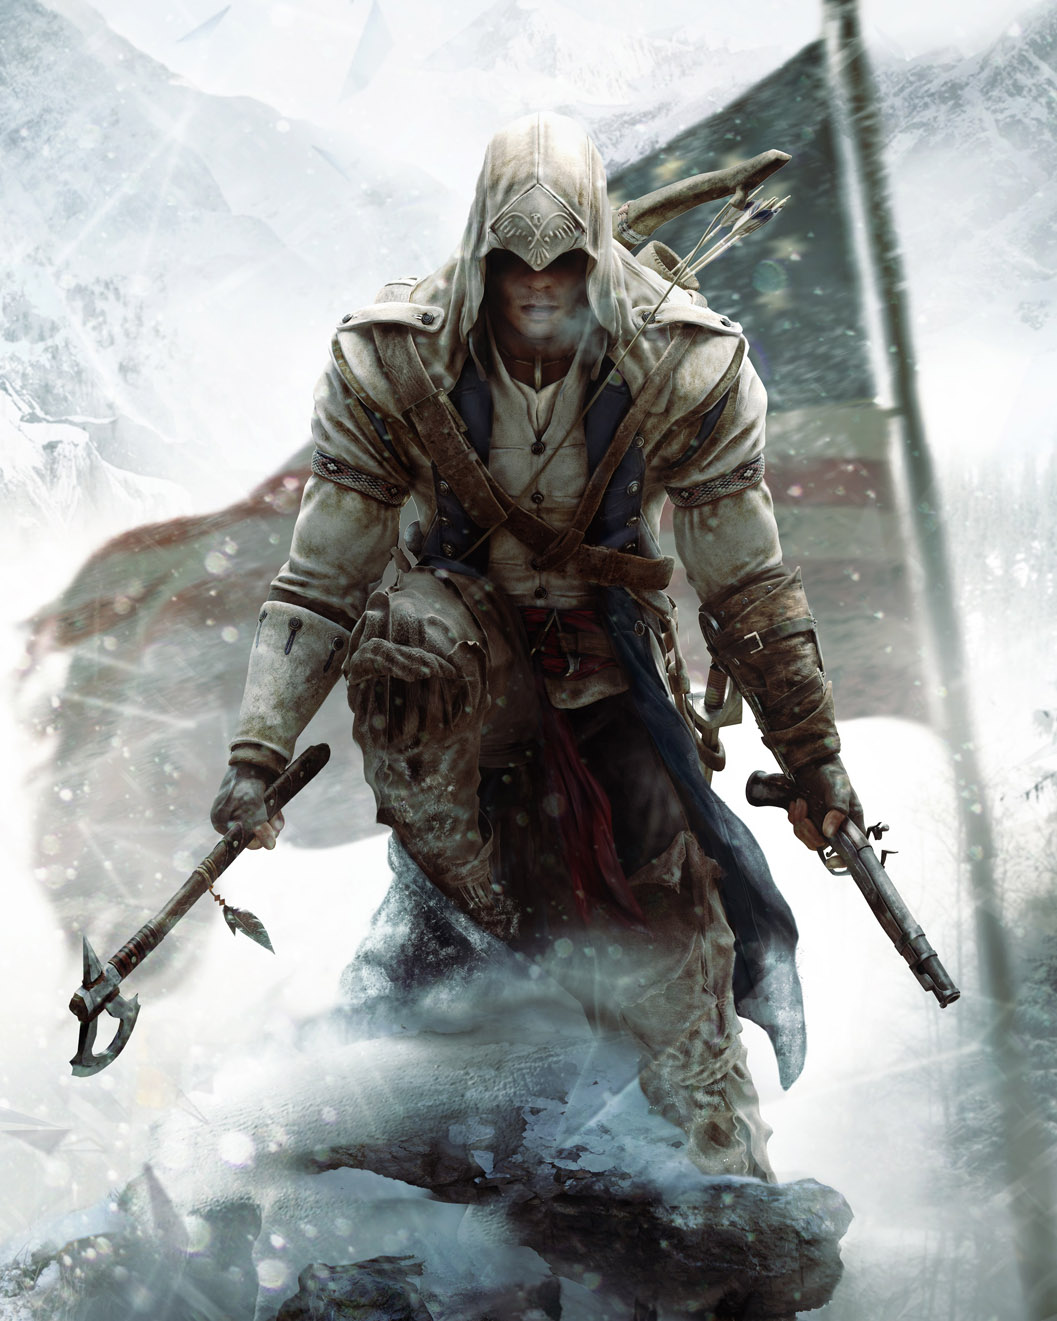 connor assassins creed 3 minecraft skin